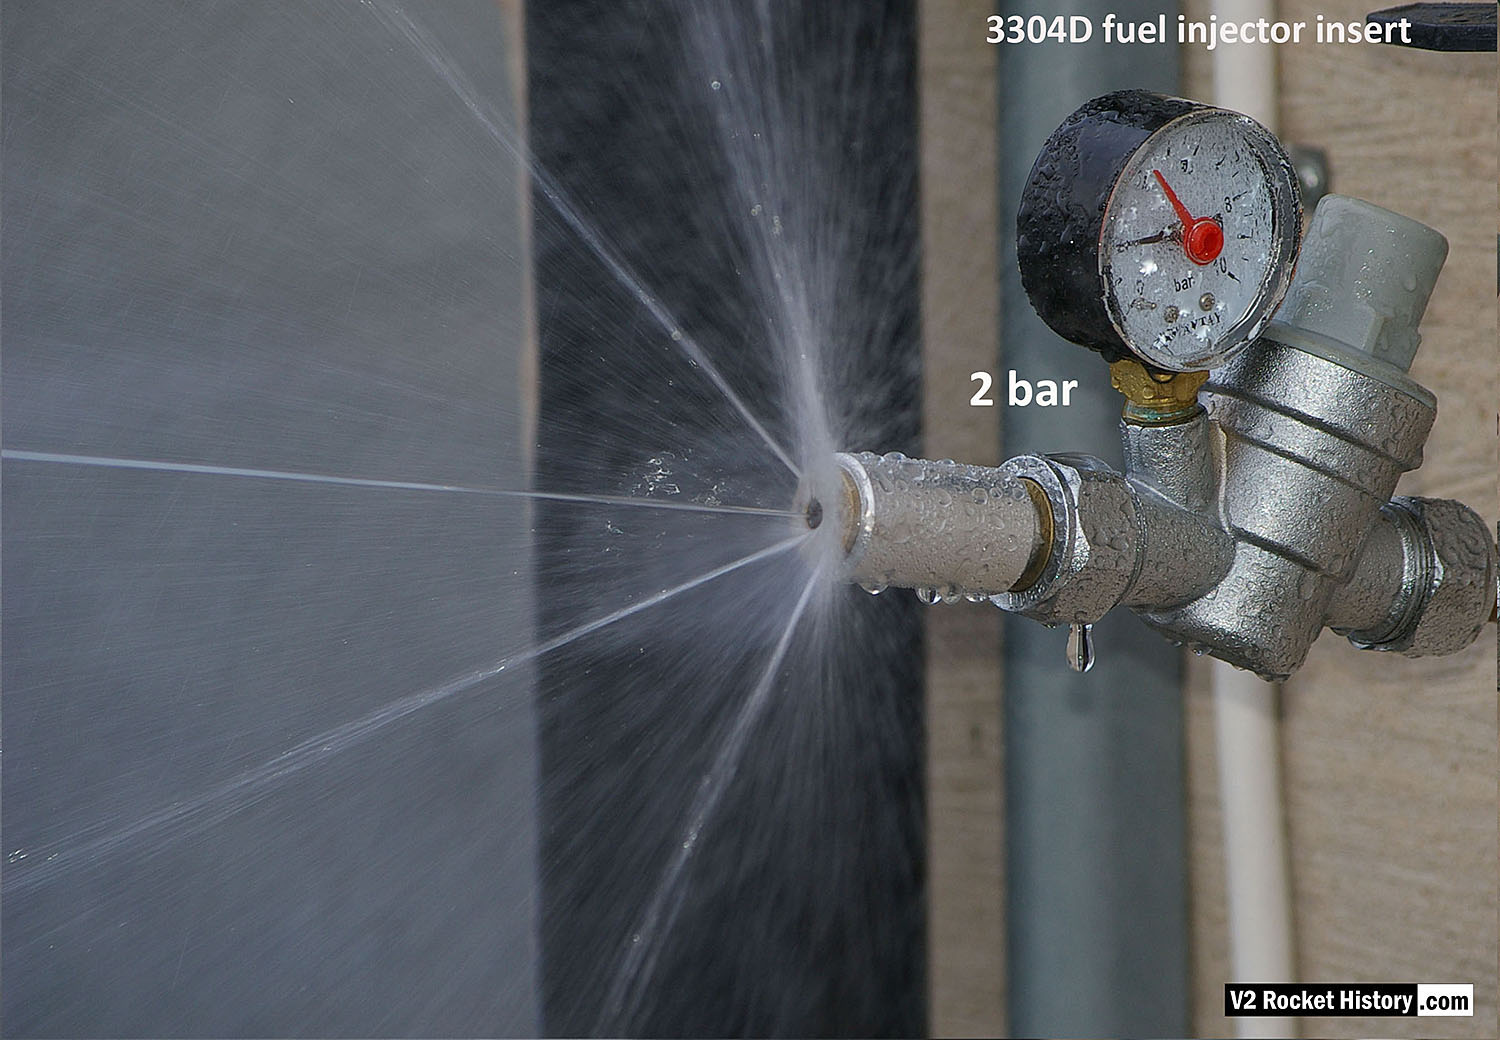 Rocket injector 3304D Water test showing central jet